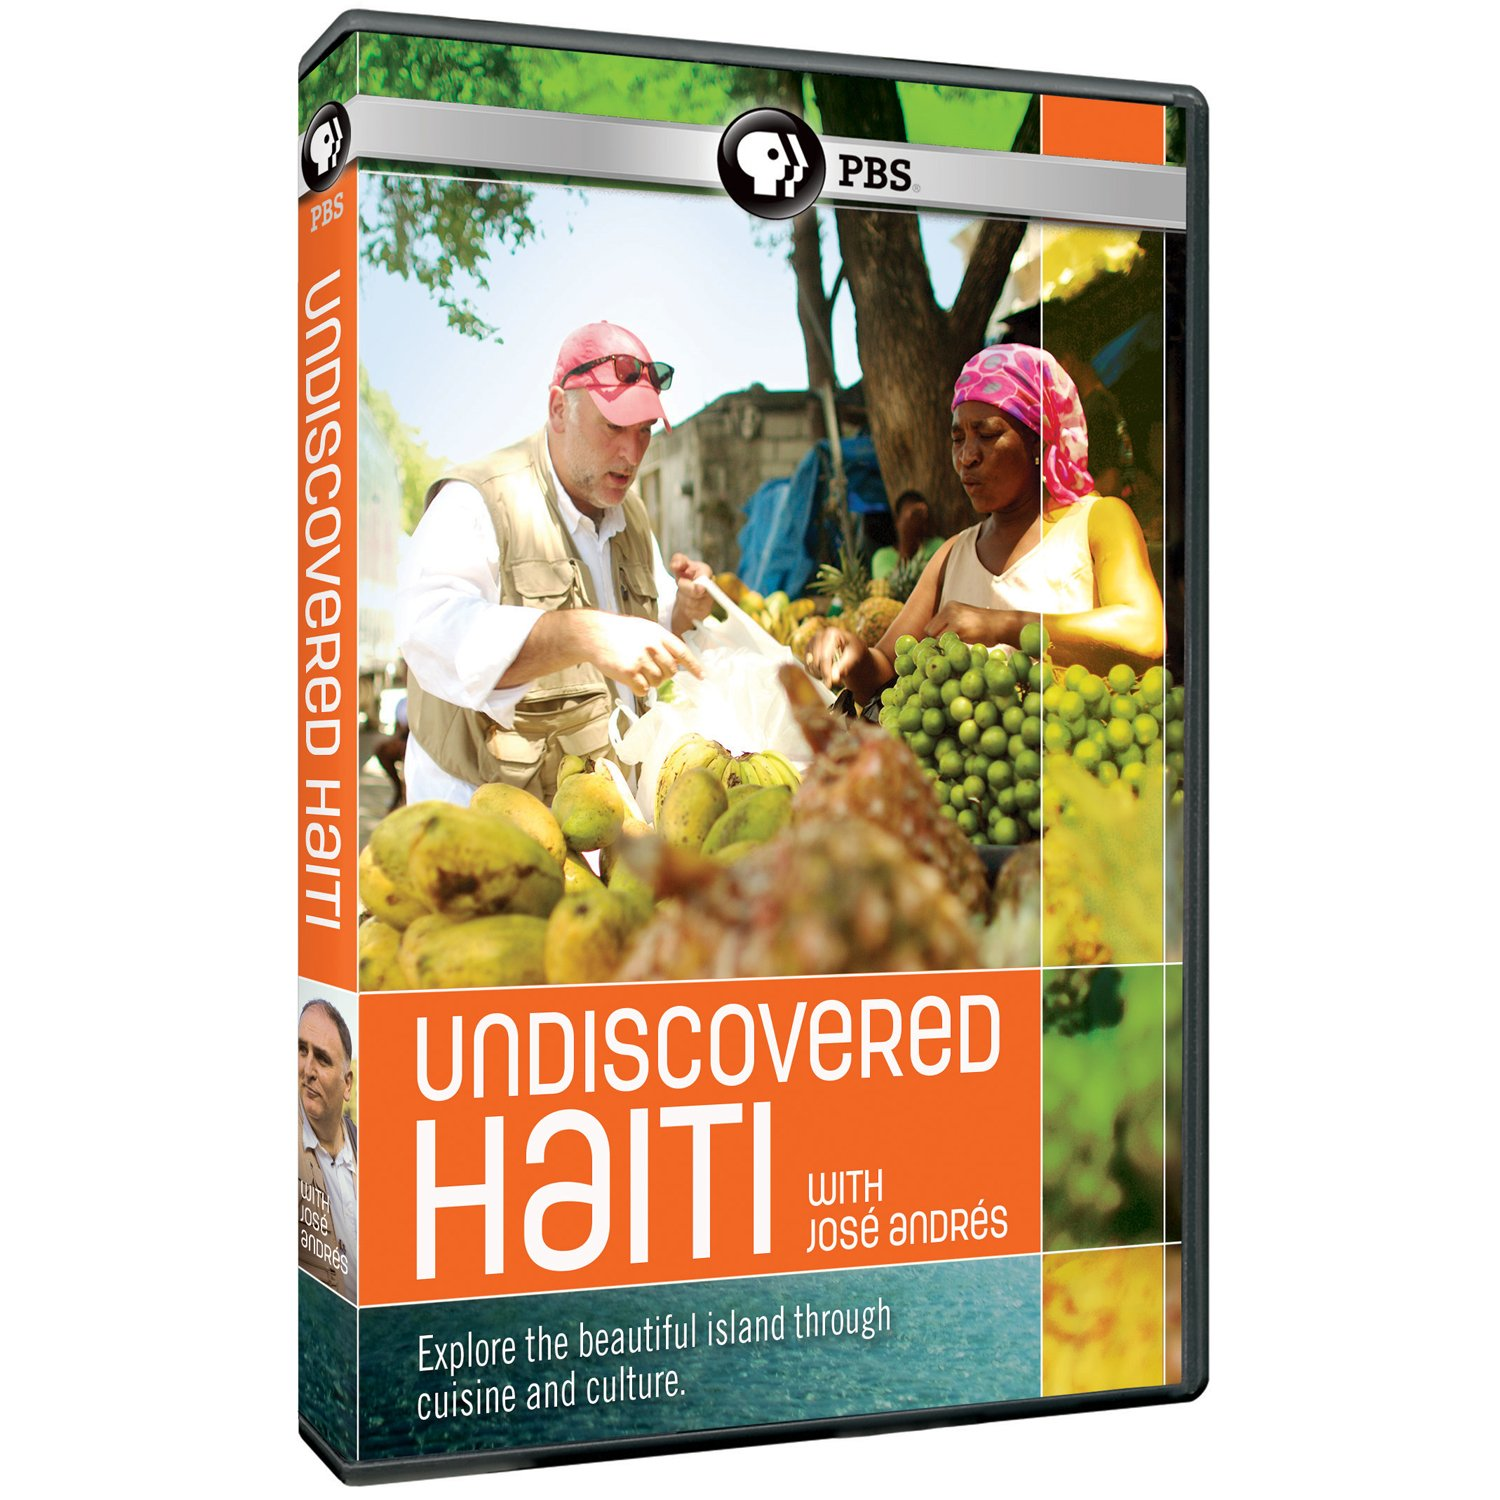 DVD : Undiscovered Haiti With Jose Andres (DVD)